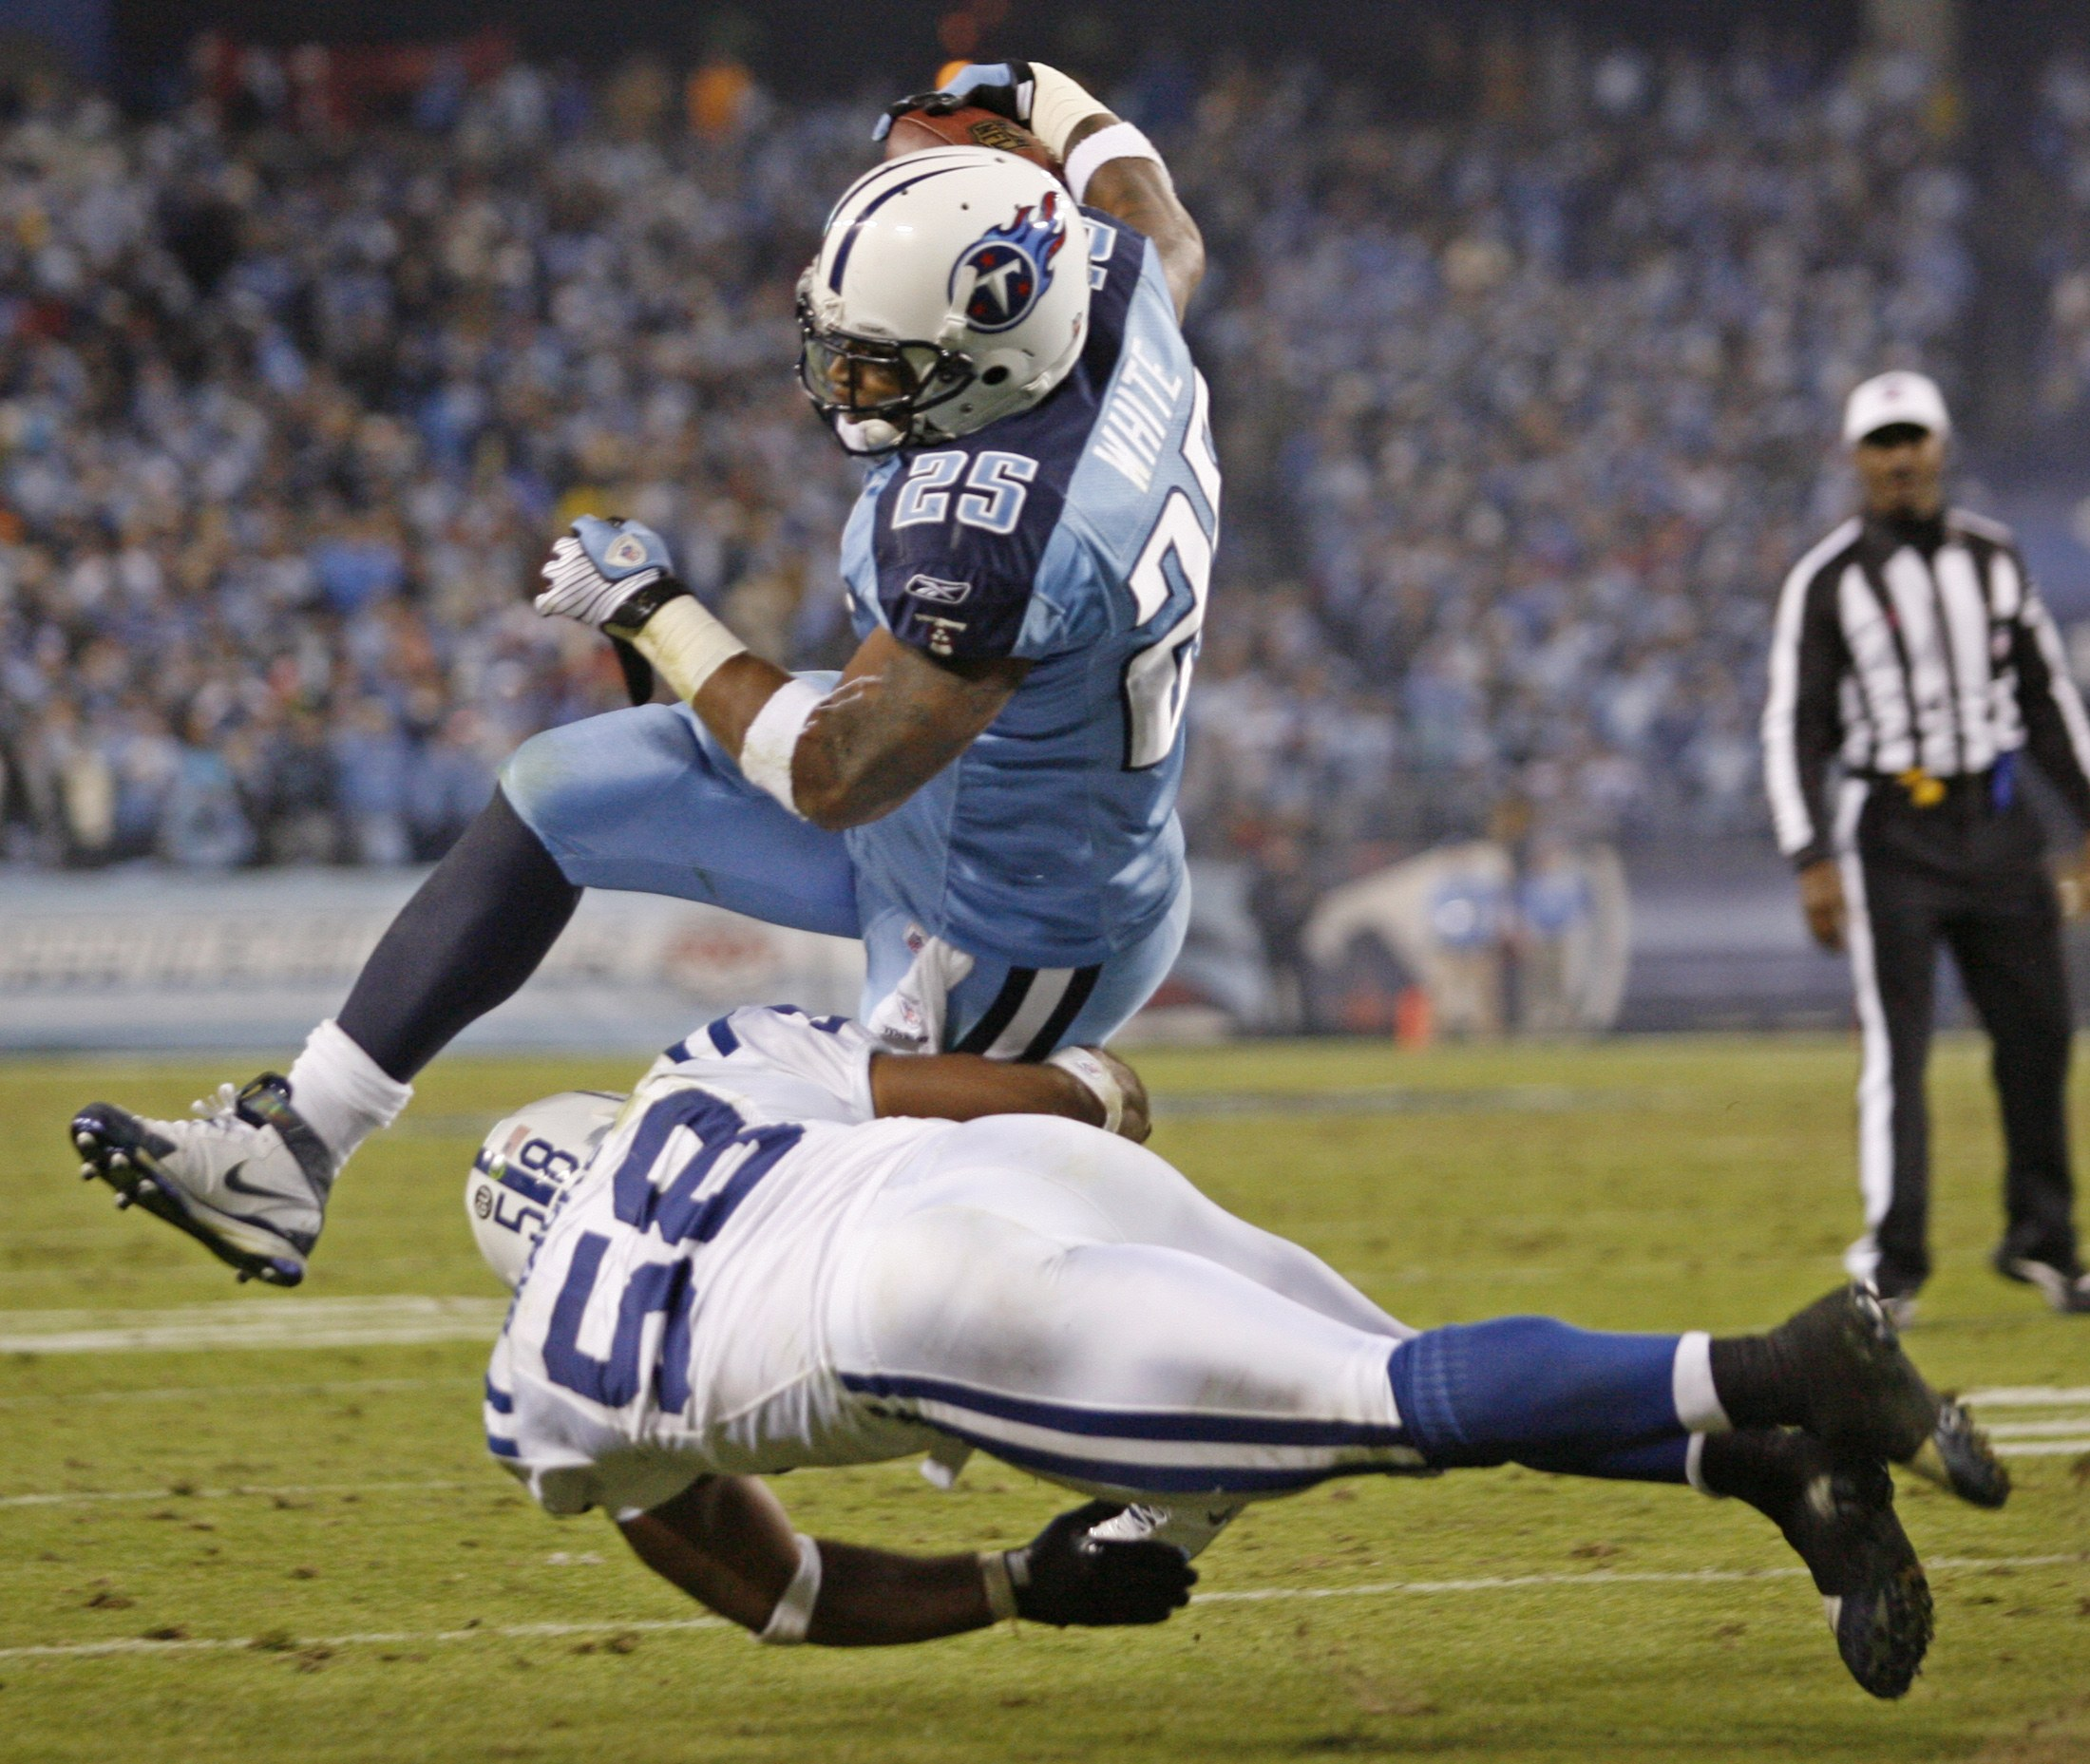 Tennessee Titans running back LenDale White leaps over Indianapolis Colts linebacker Gary Brackett to score during the second half of their NFL footba...